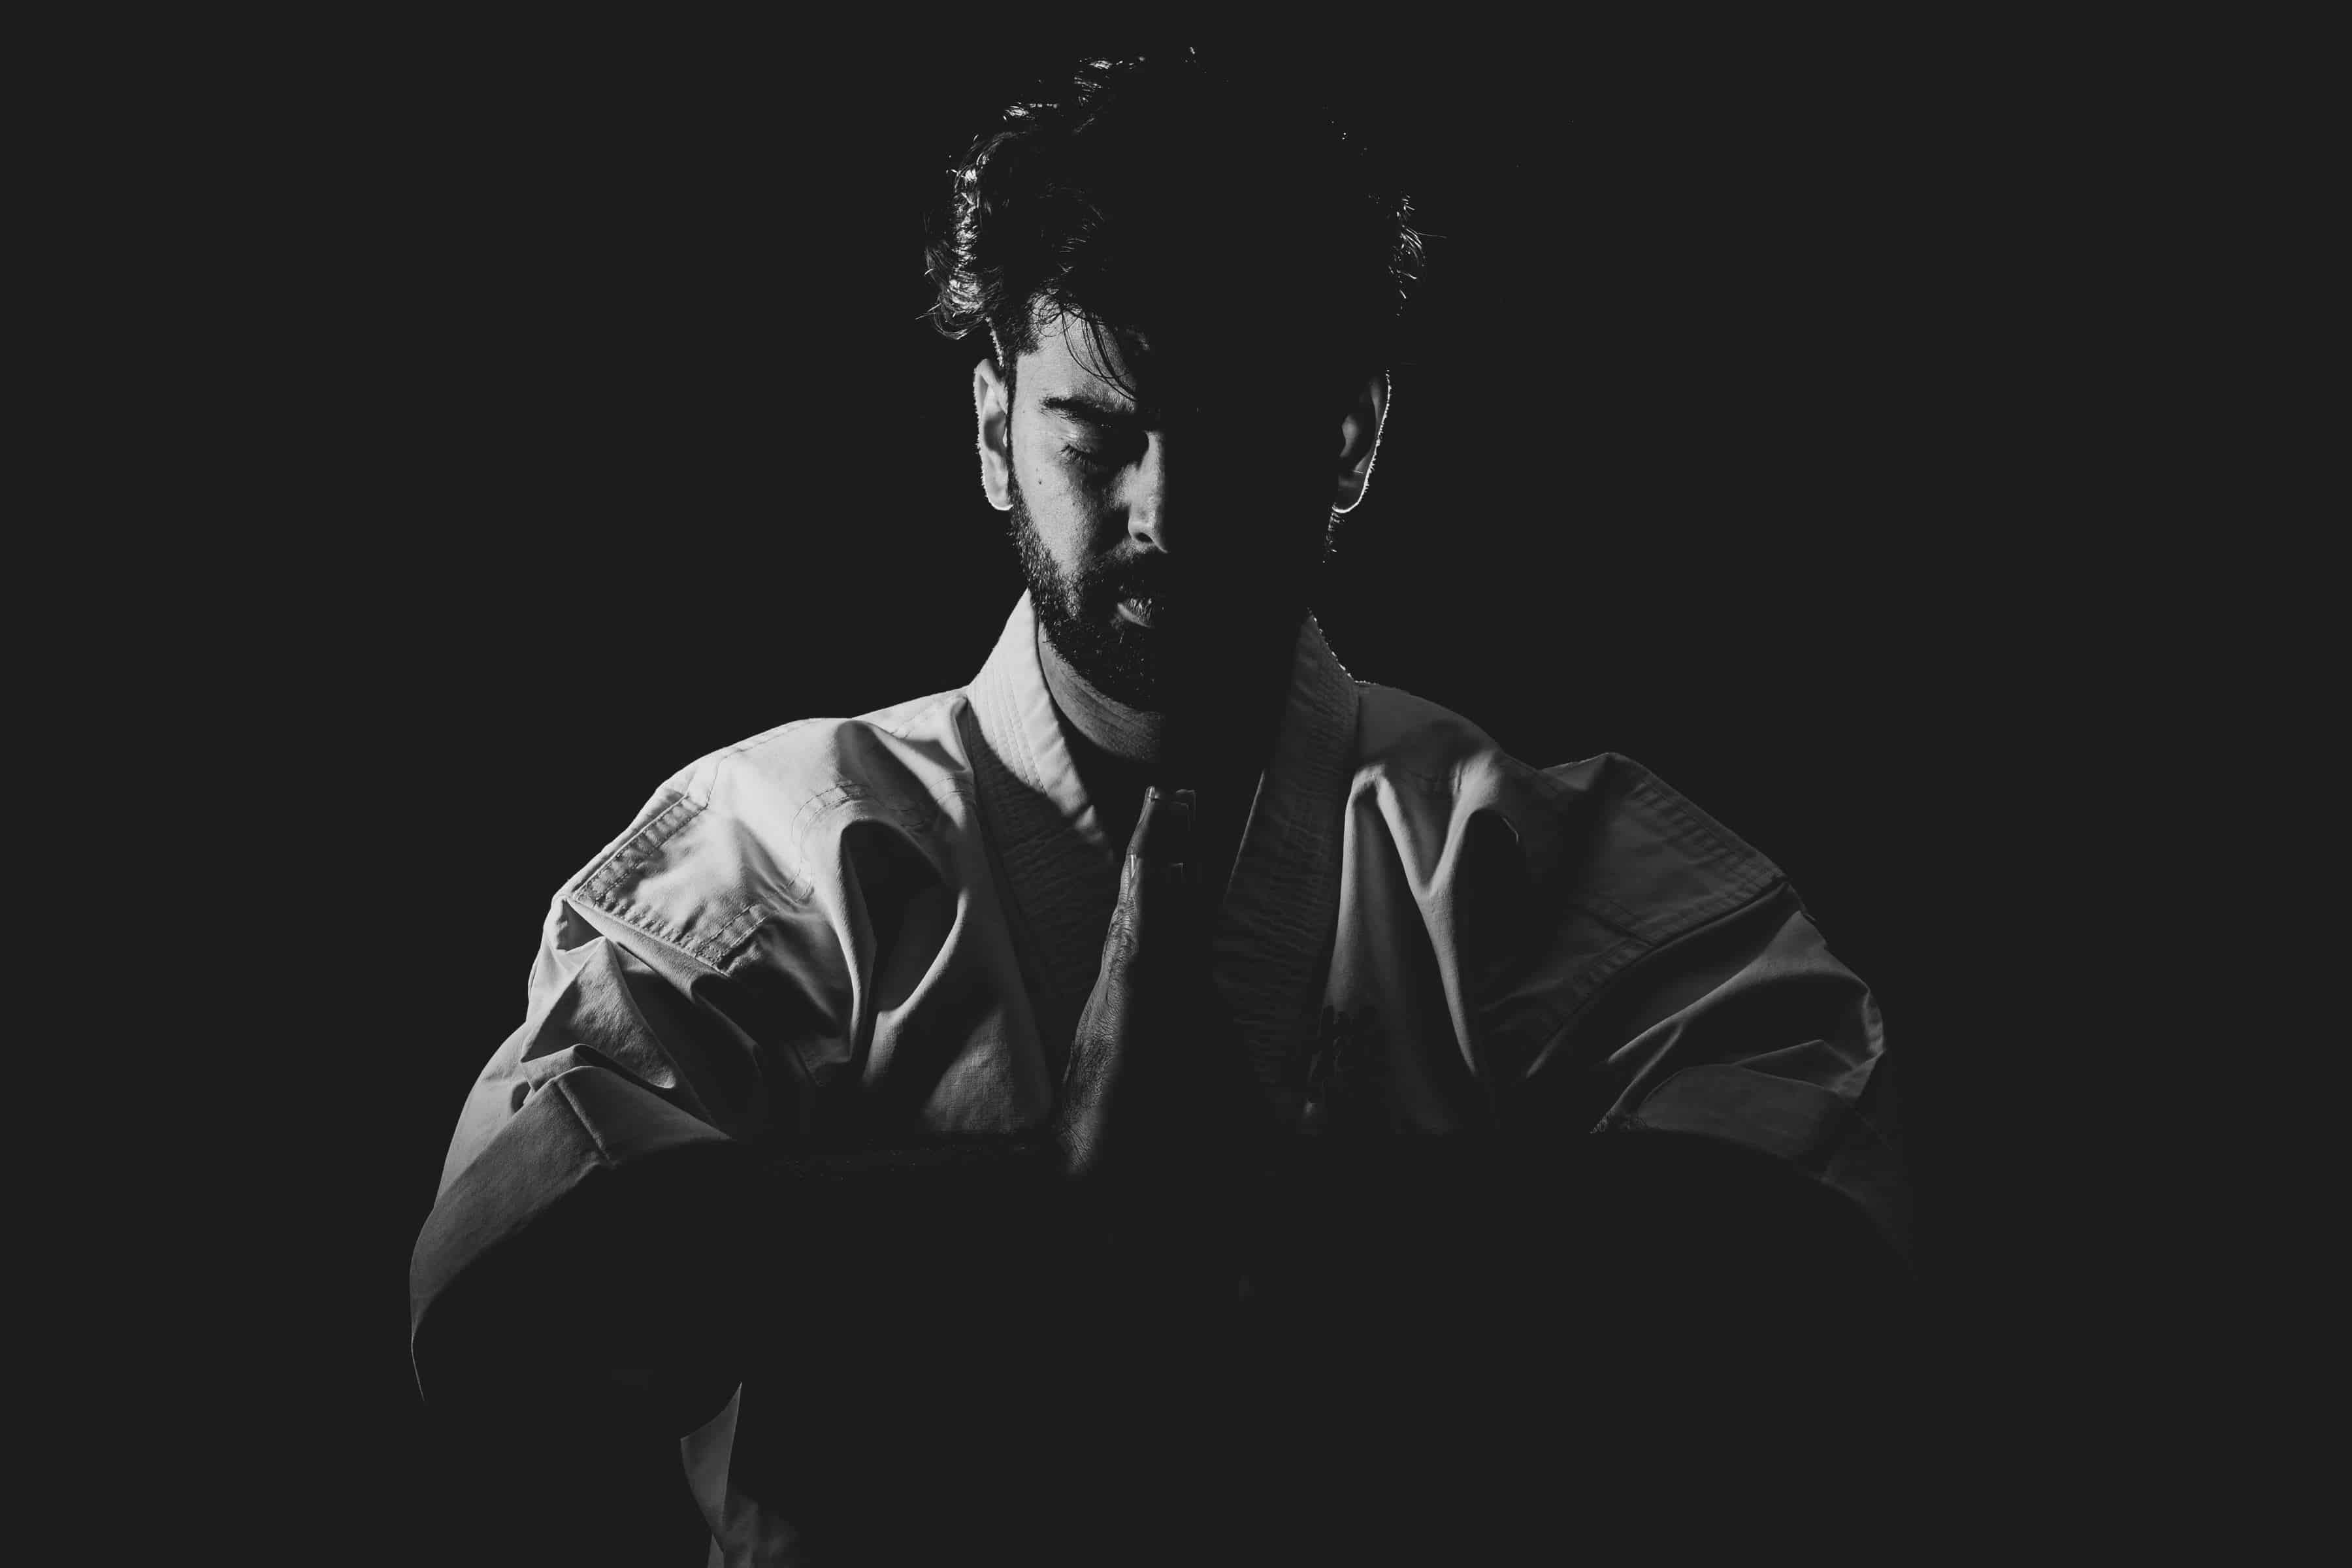 grayscale photo of martial artist